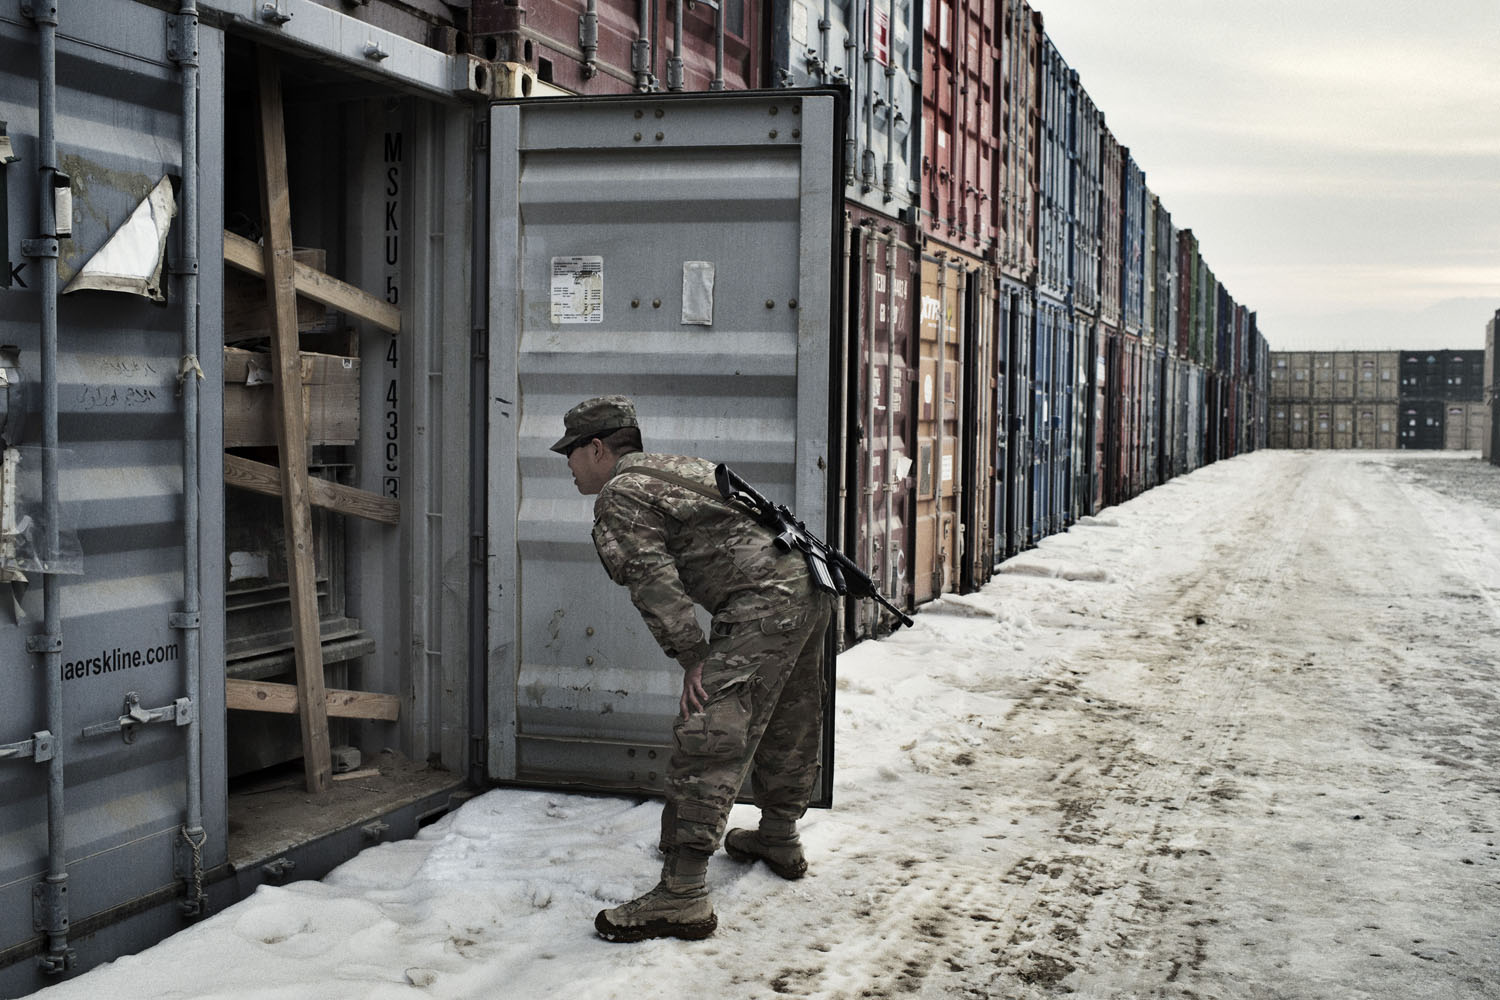 First Lieut. Henry Chan of the 18th Combat Sustainment Support Battalion opens containers to find out what is inside at a container yard at Bagram.